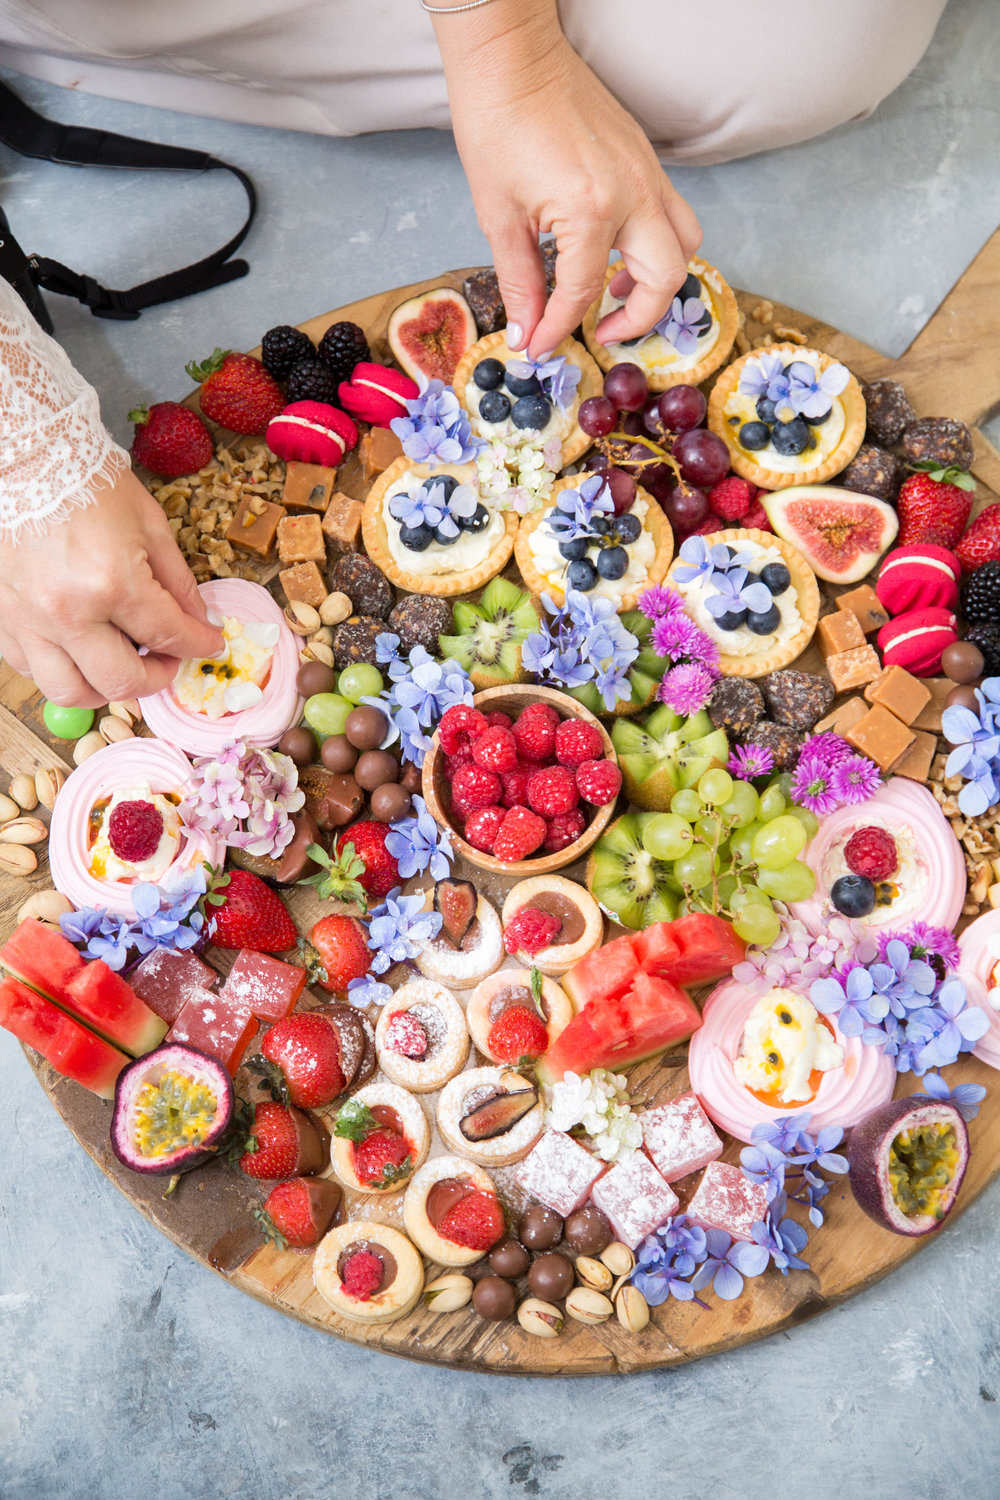 This delicious dessert platter is so easy to create a real show stopper!